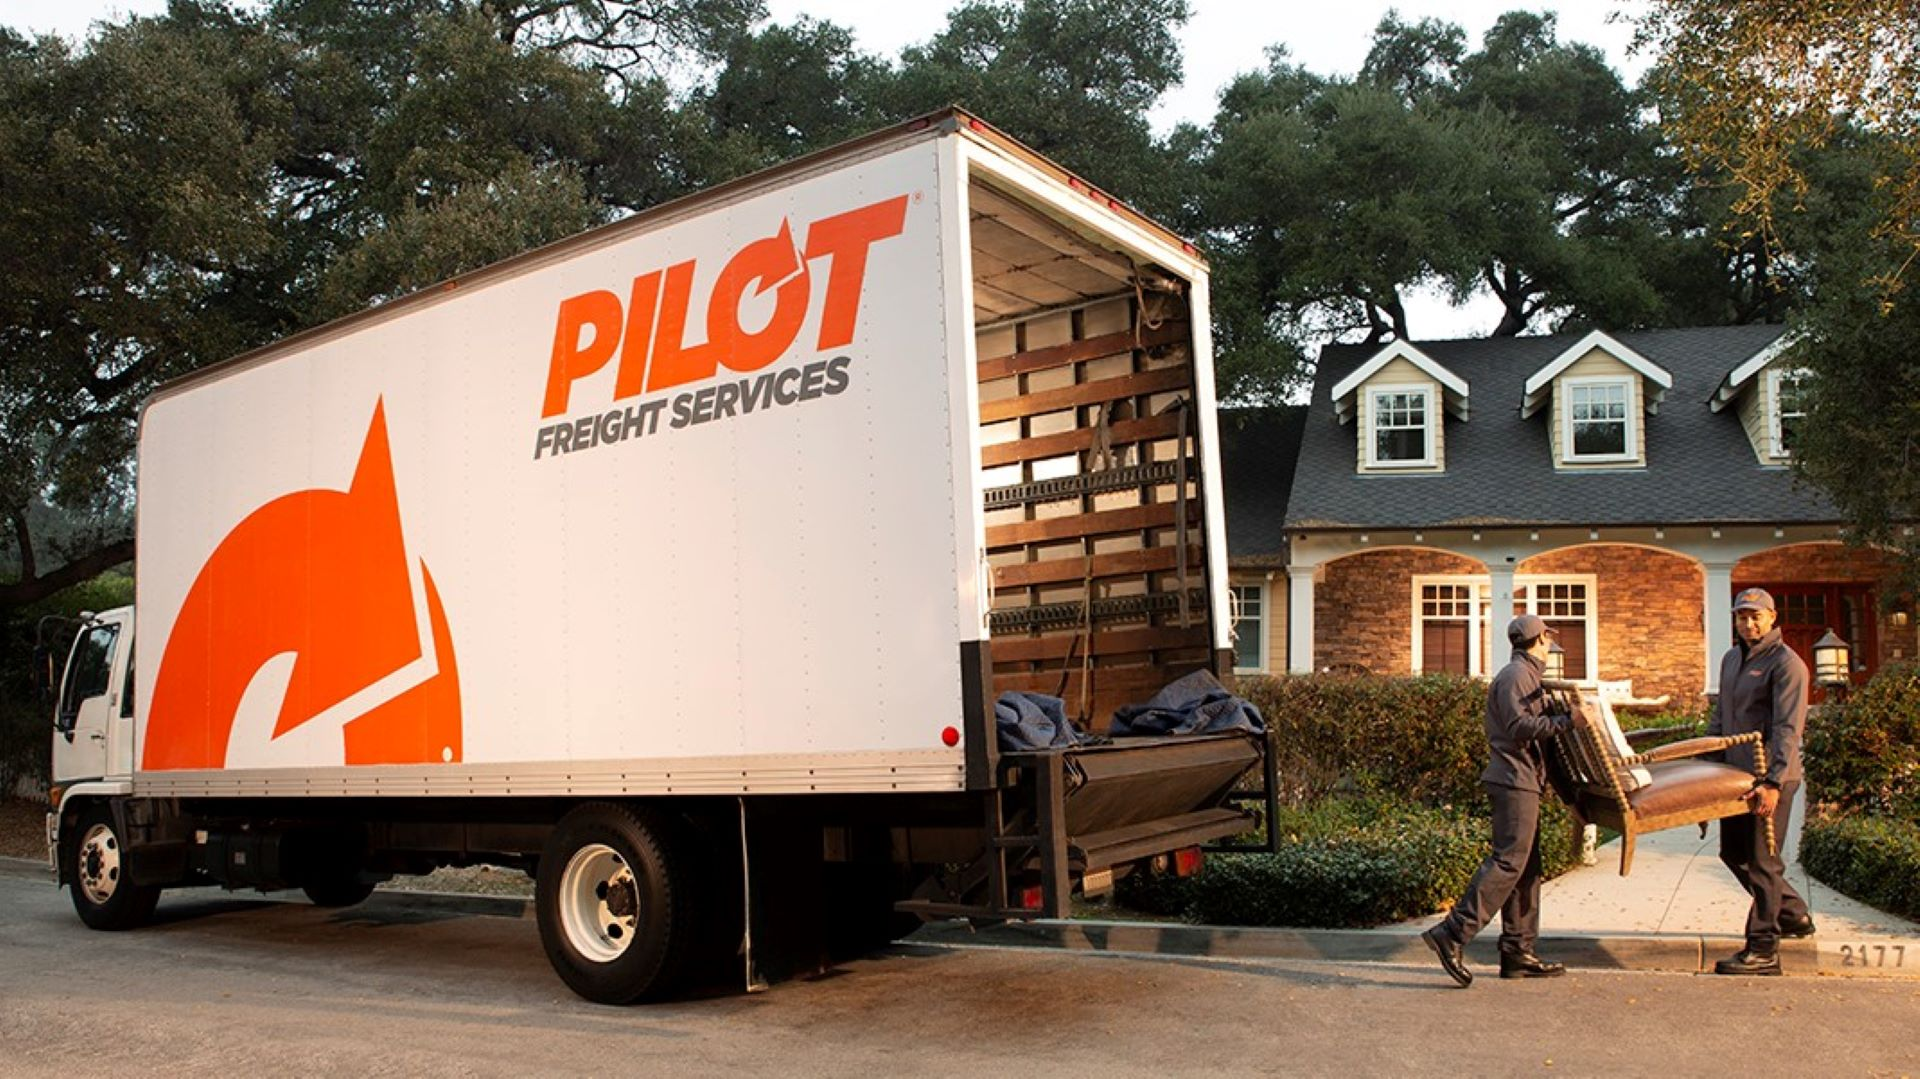 Drivers unload furniture from a truck to bring in a home. Pilot Freight is the company.